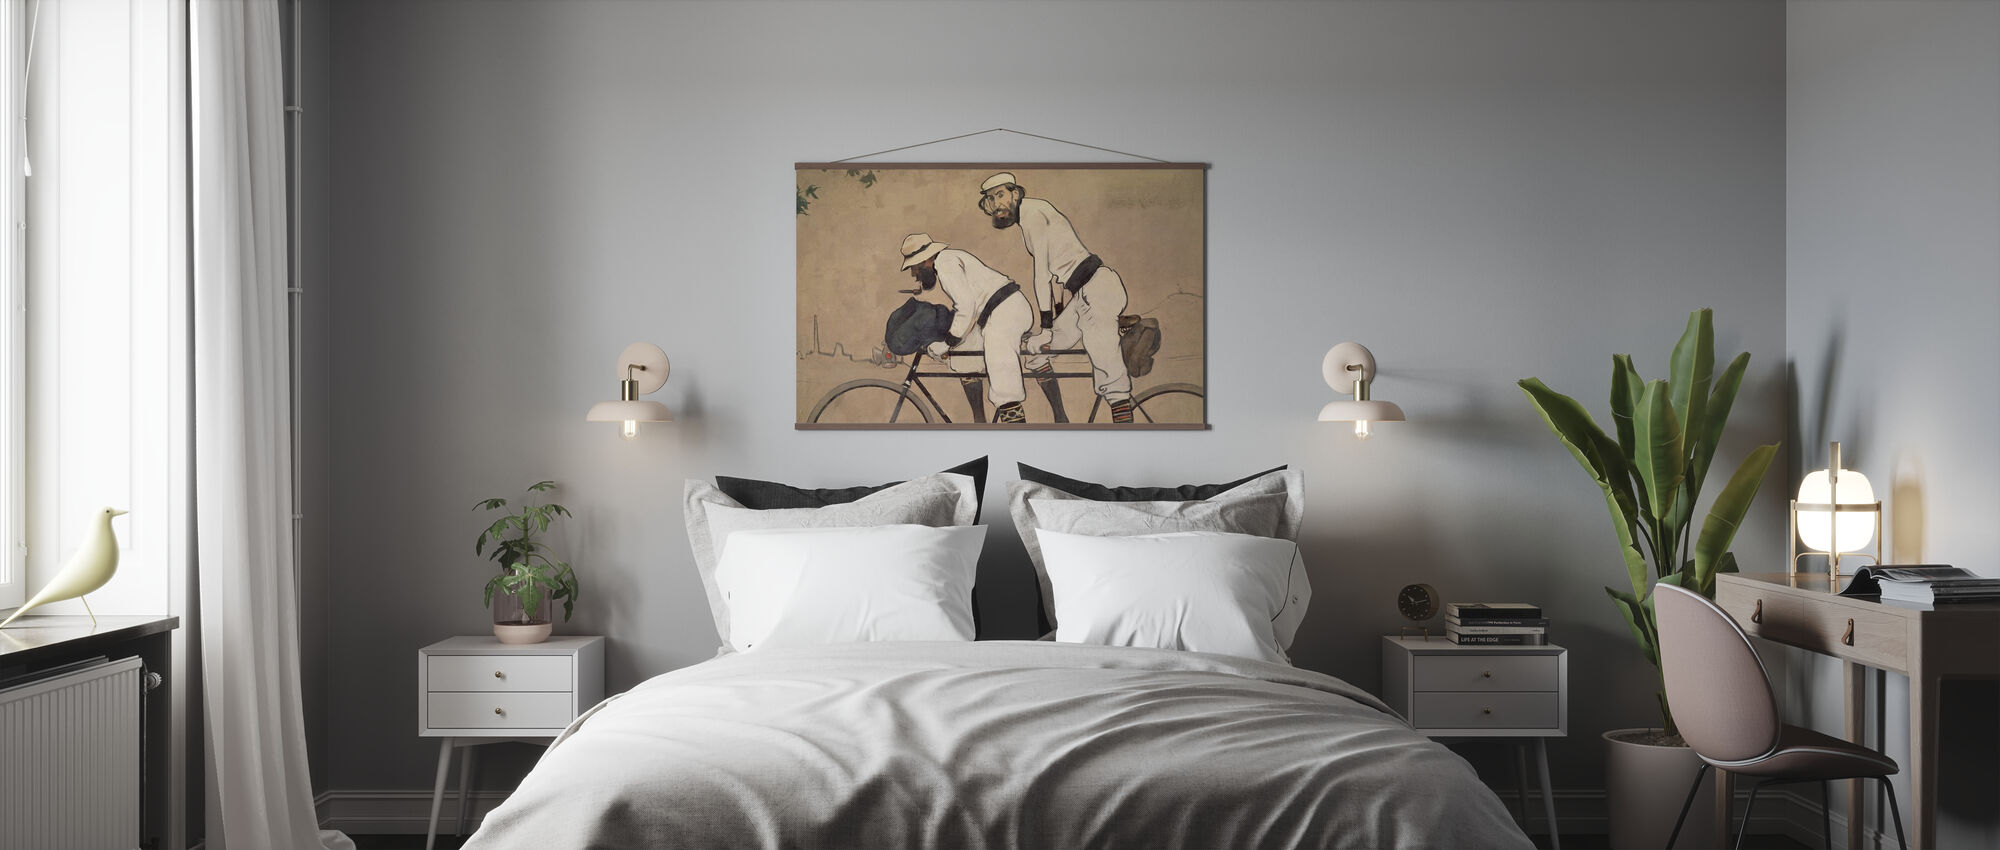 Ramon Casas and Pere Romeu - Poster - Bedroom